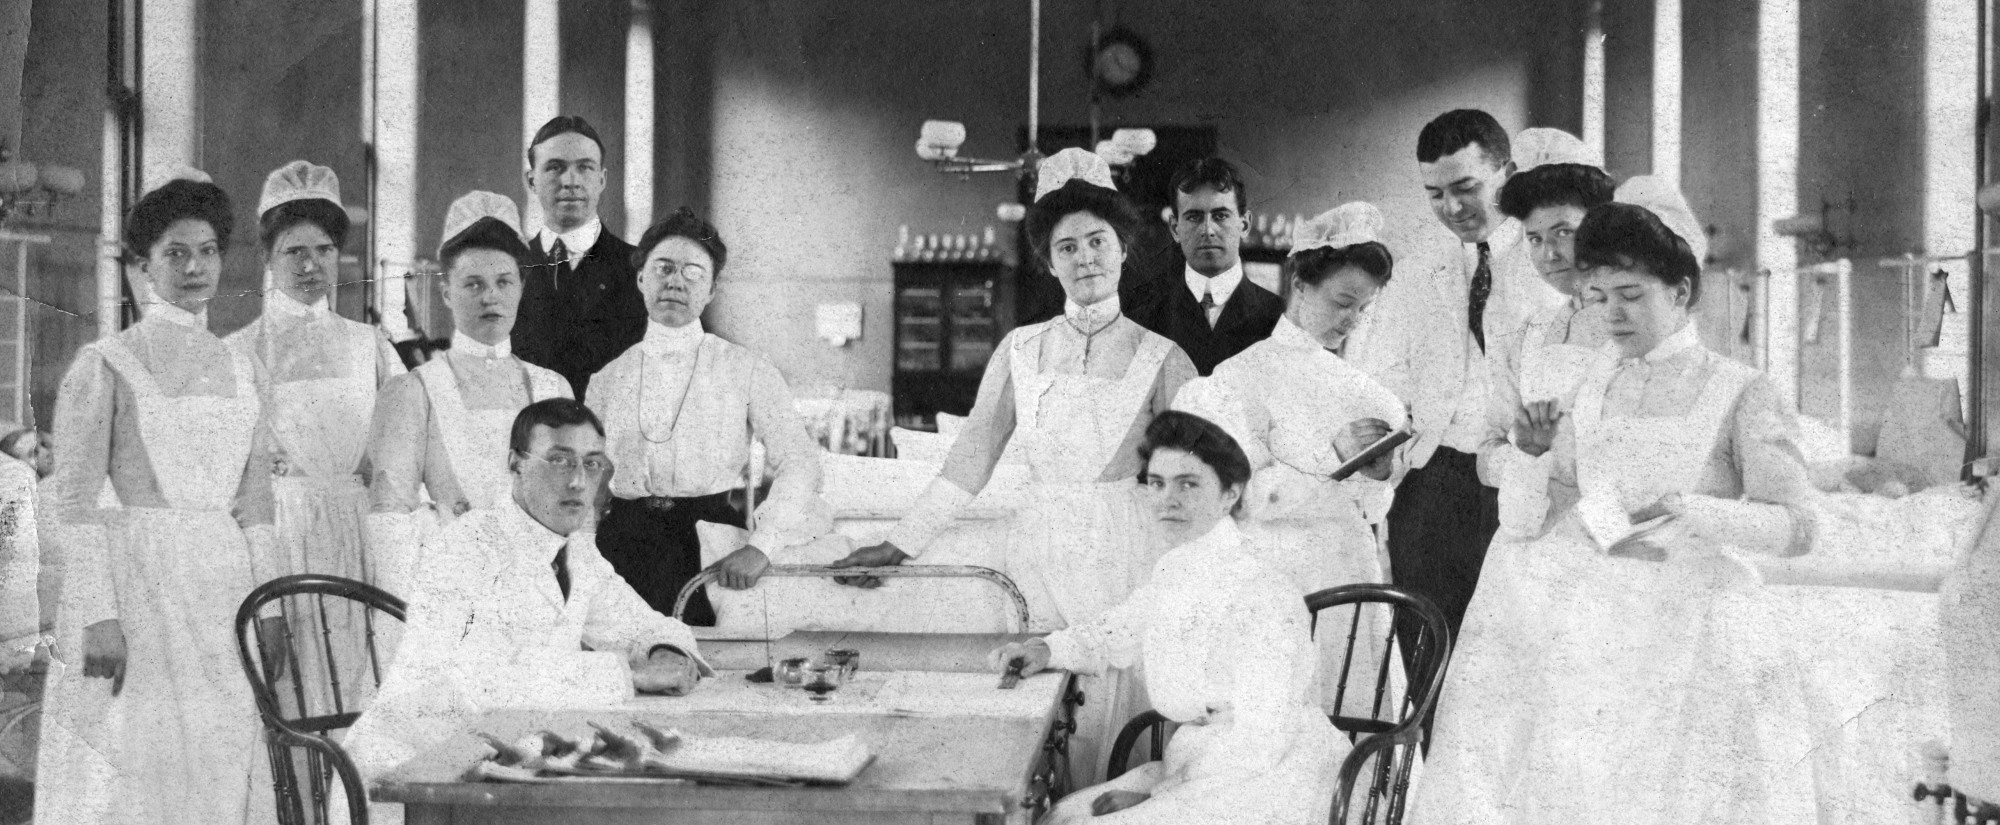 Johns Hopkins Hospital staff in Women's Ward G